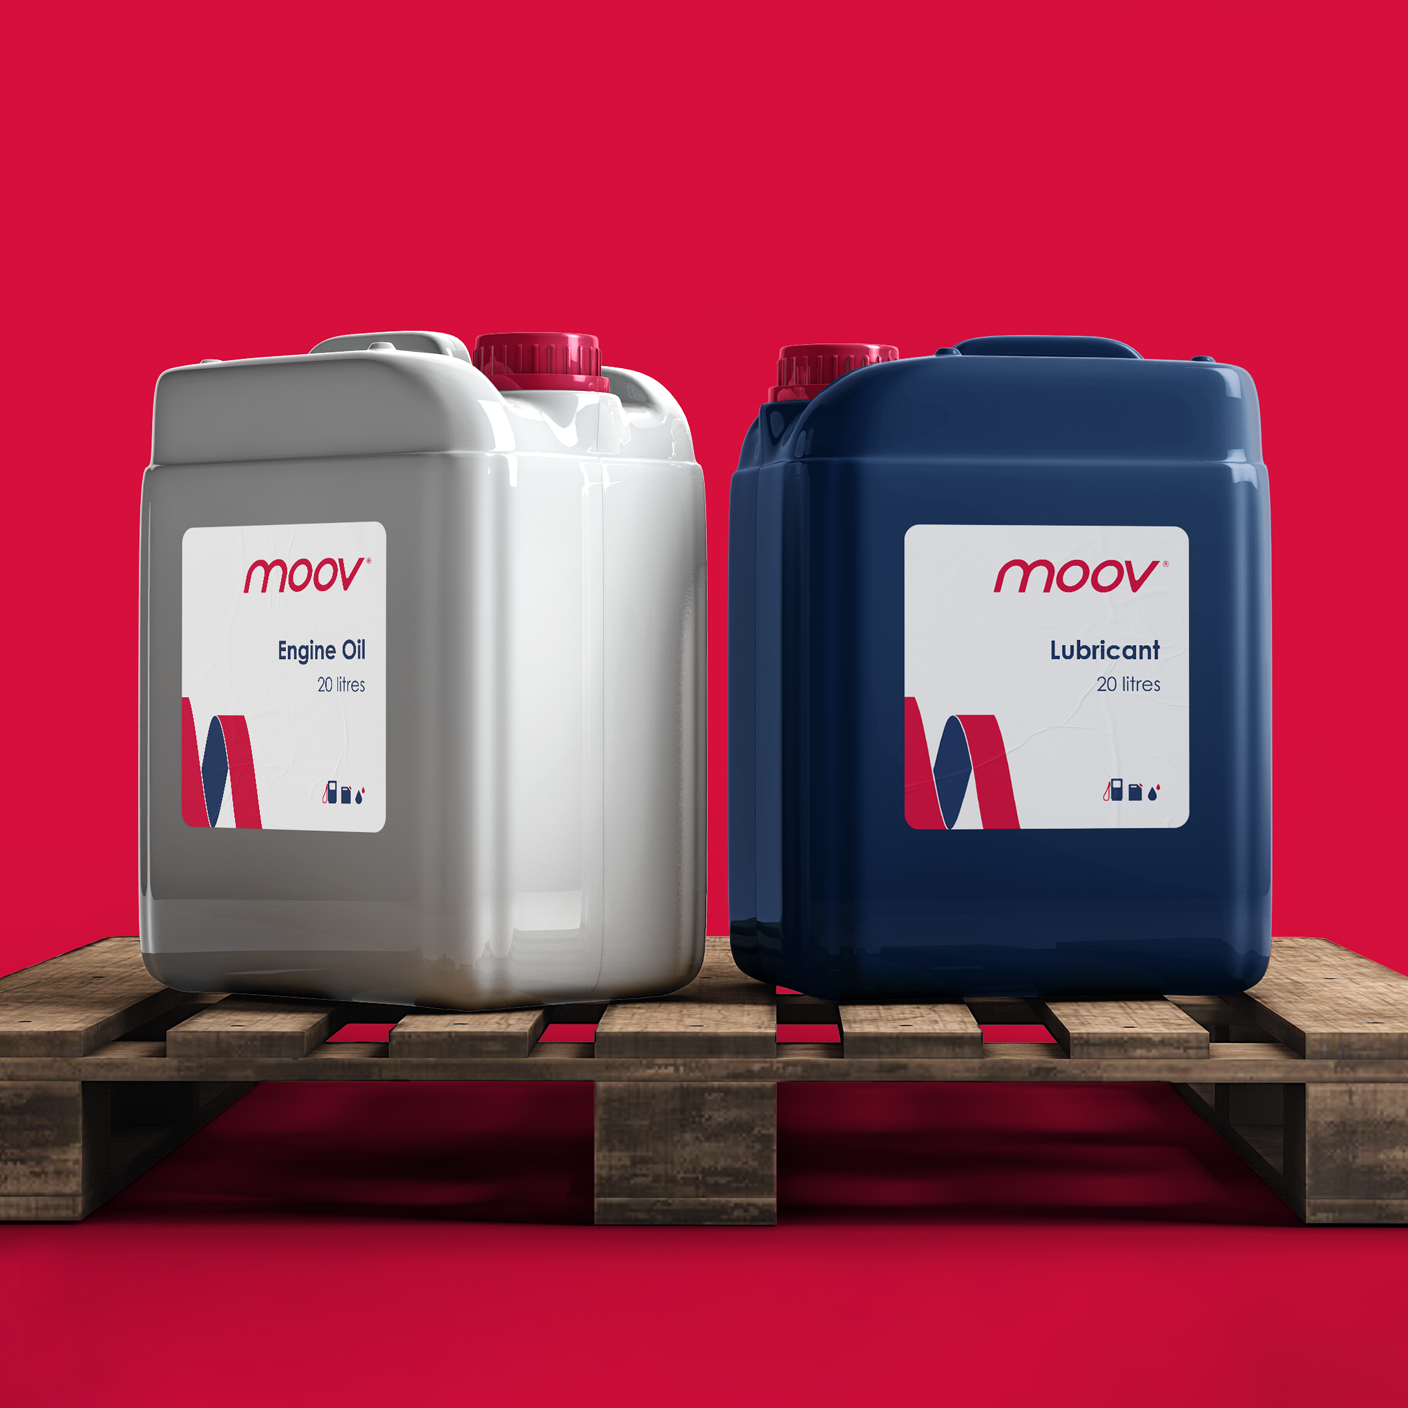 Creative Caterpillar client Moov Branded Product Container